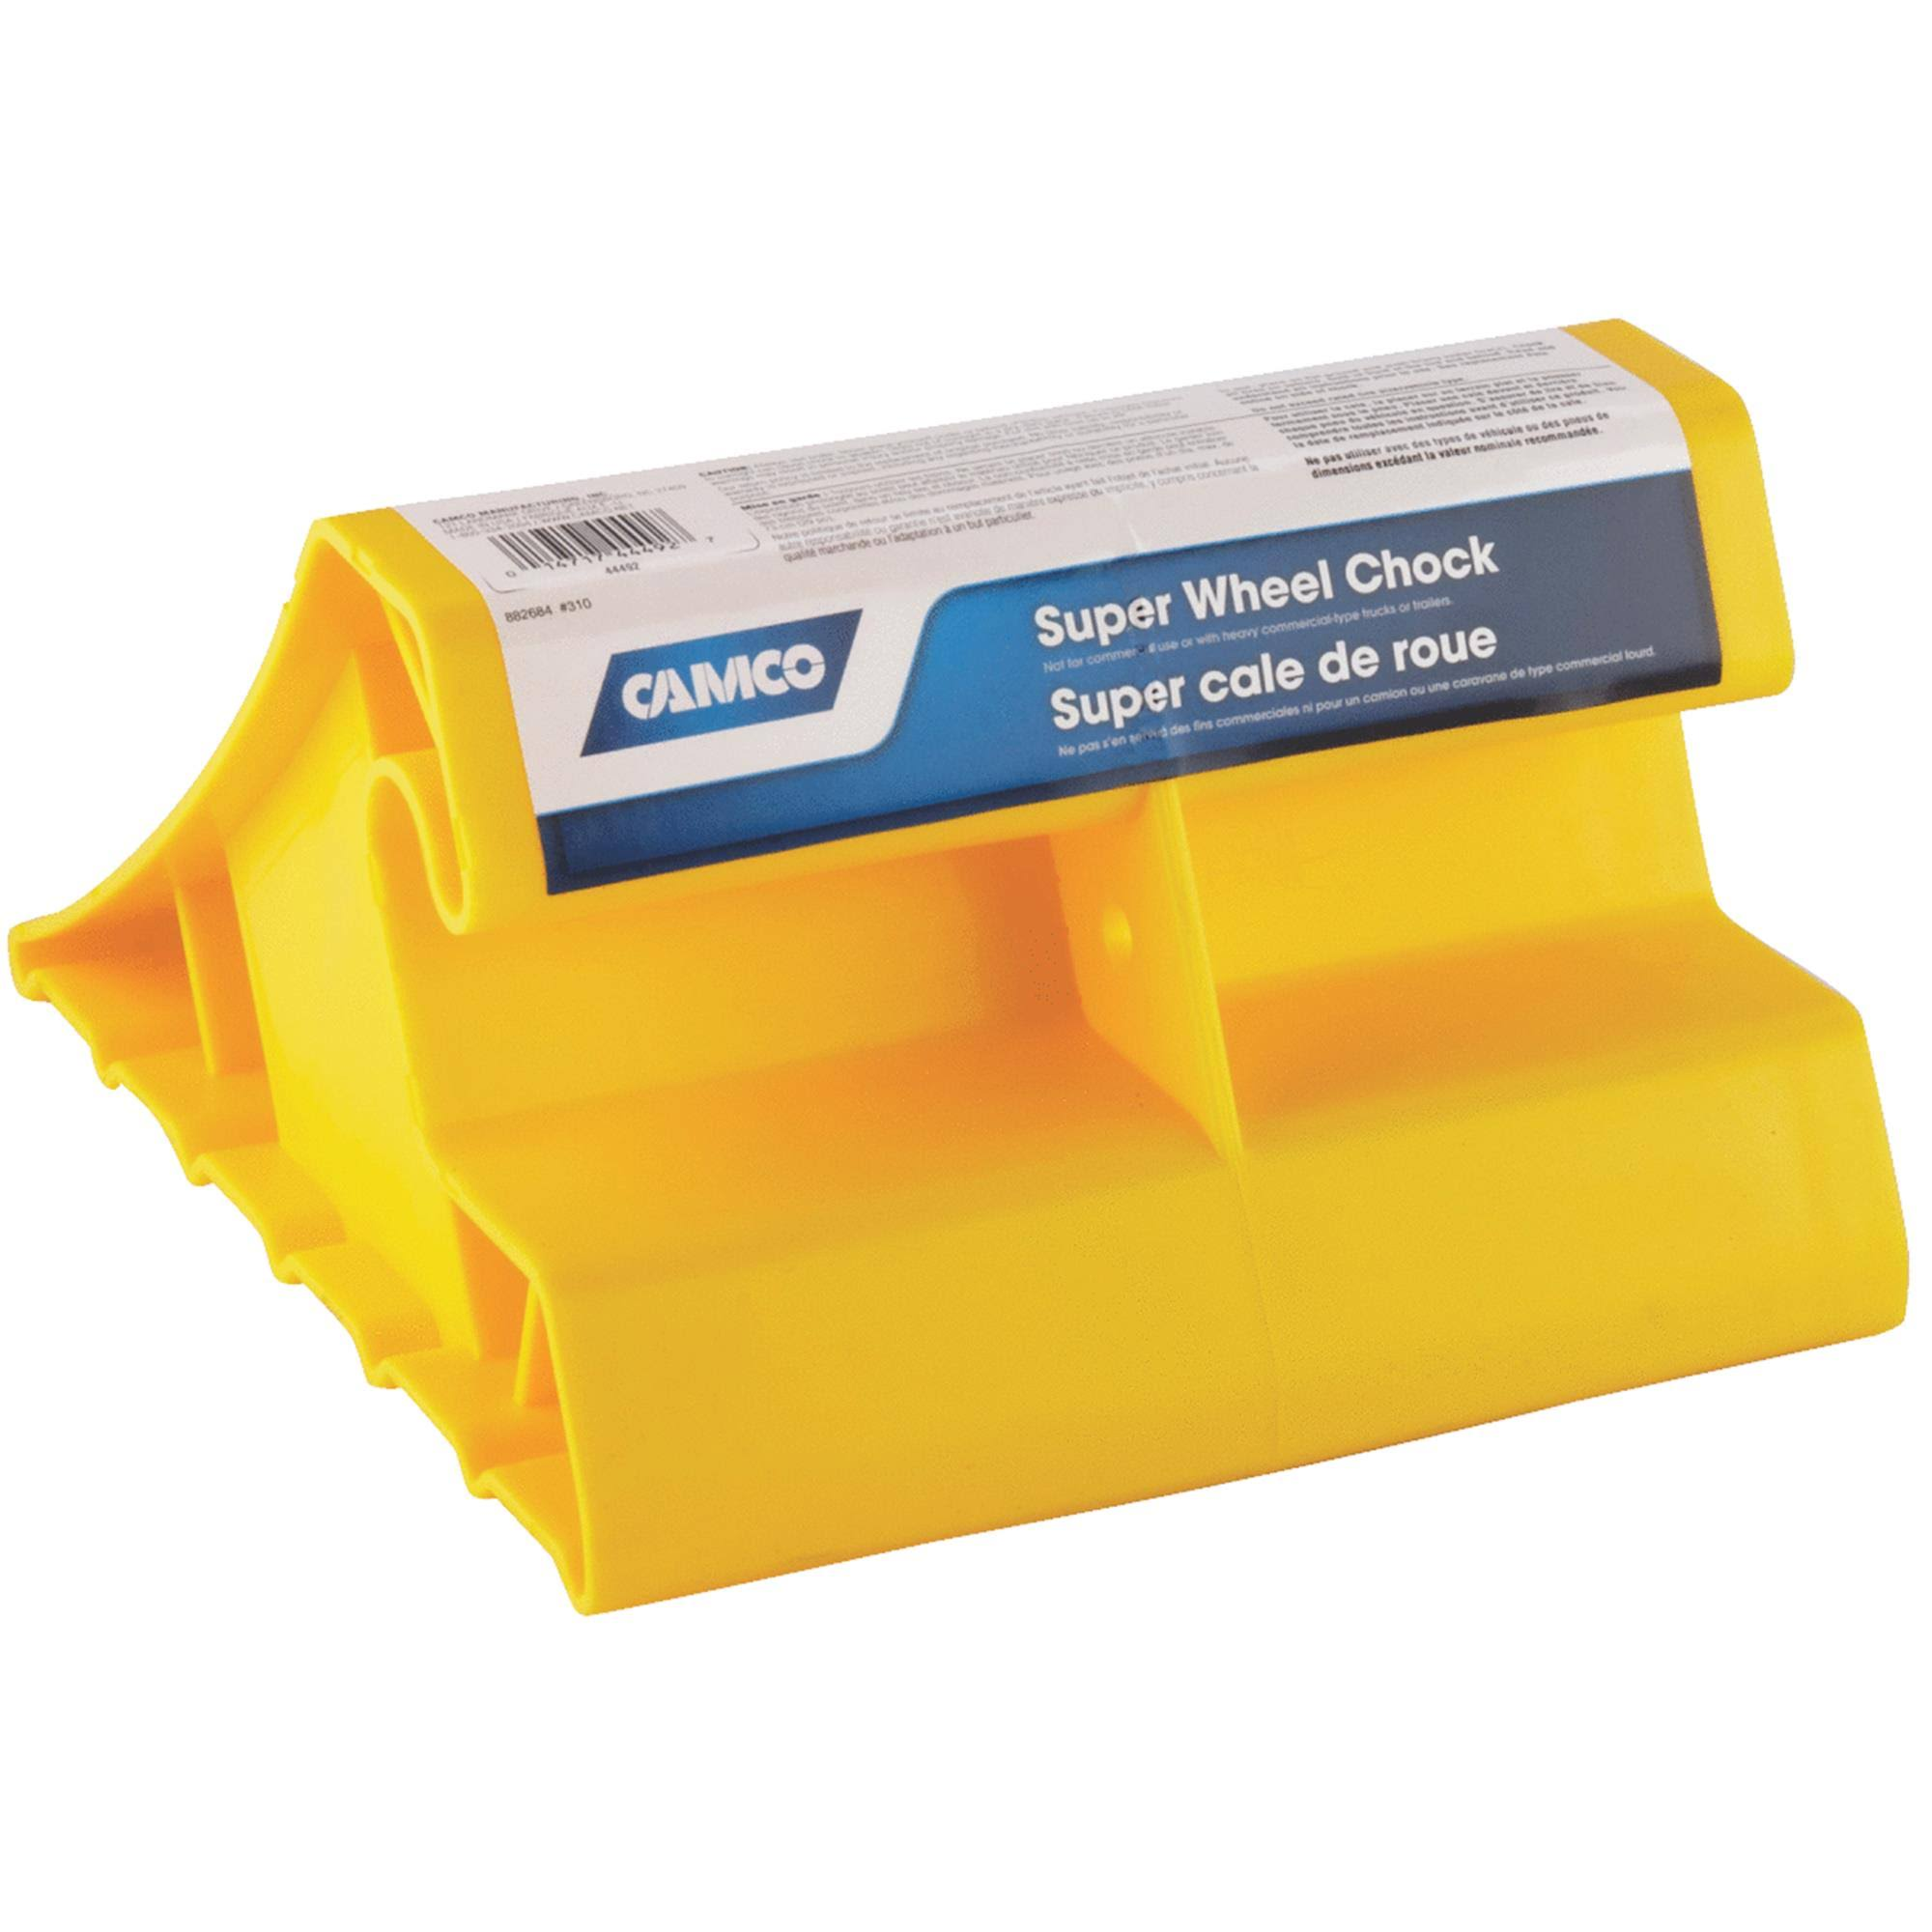 Camco Trailers Super Wheel Chock - Yellow